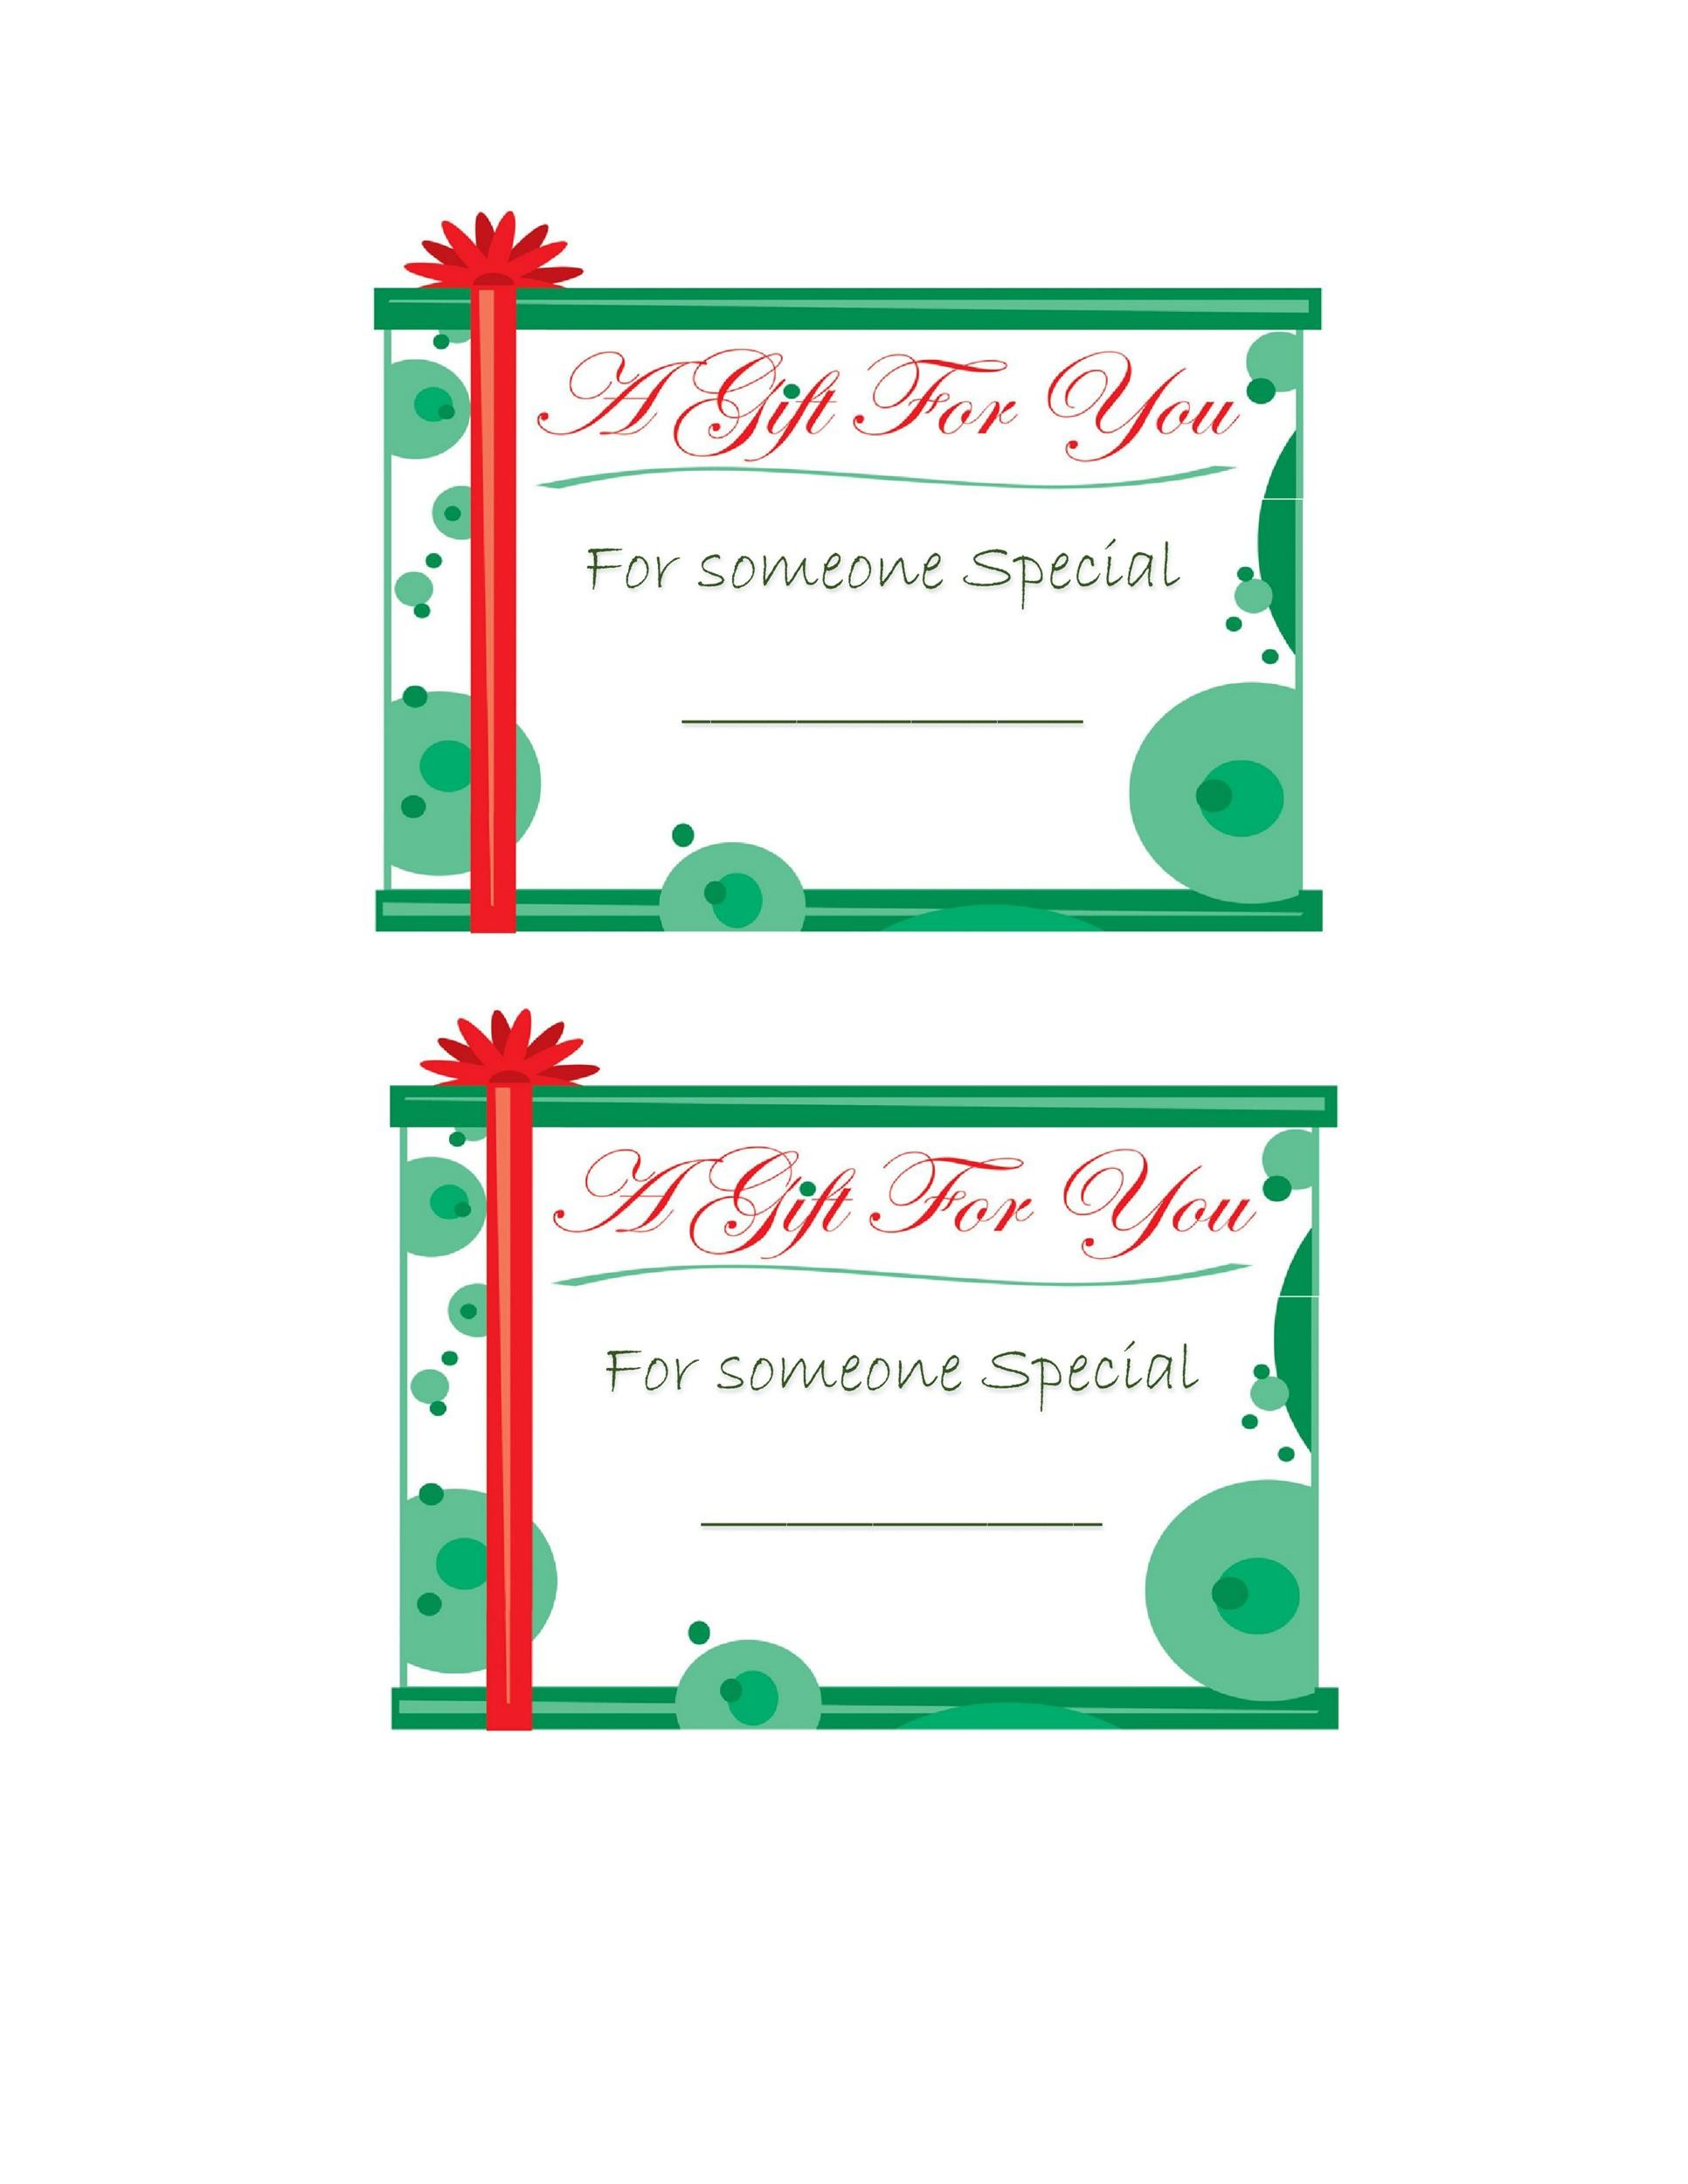 photo about Gift Tags Printable called 44 Free of charge Printable Reward Tag Templates ᐅ Template Lab